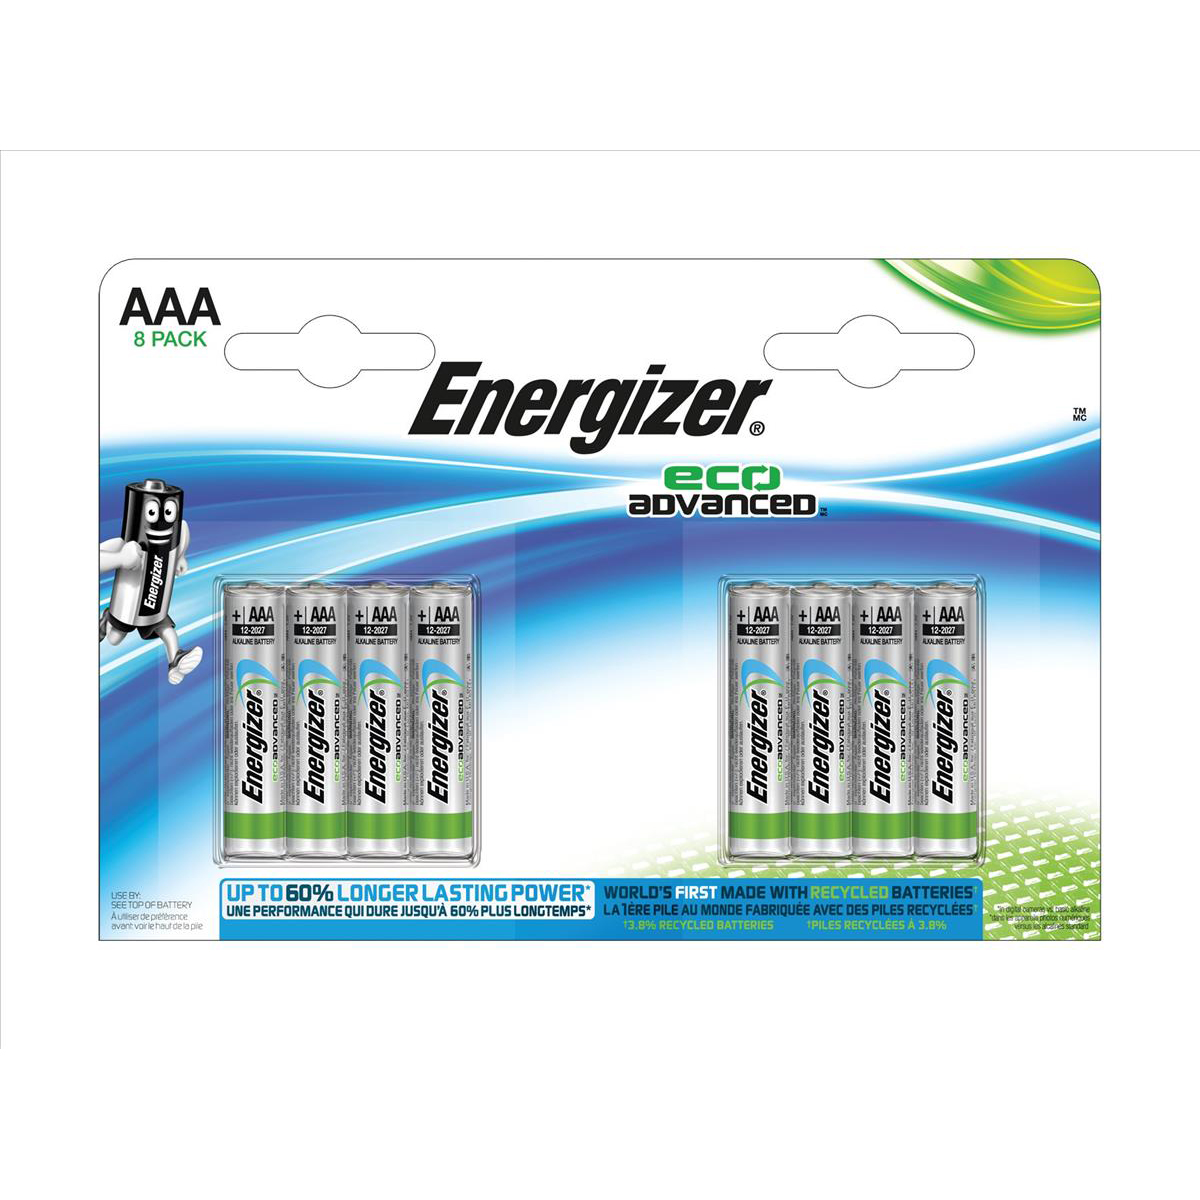 Energizer Eco Advance Batteries AAA / E92 Ref E300116300 Pack 8